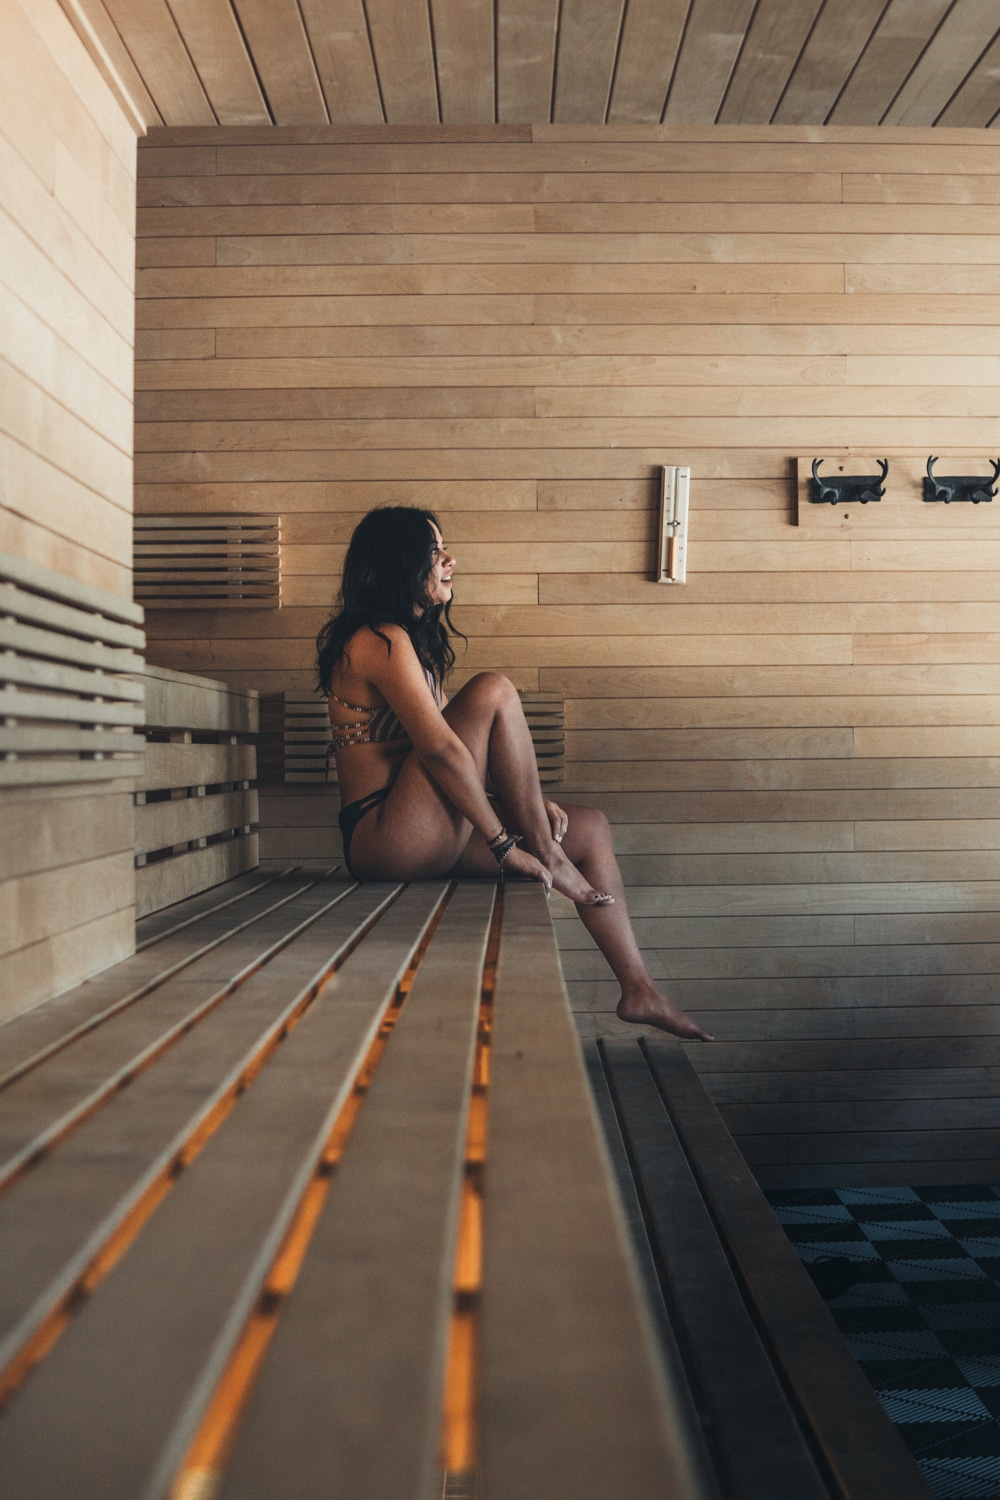 sauna at scandinave spa tremblant quebec